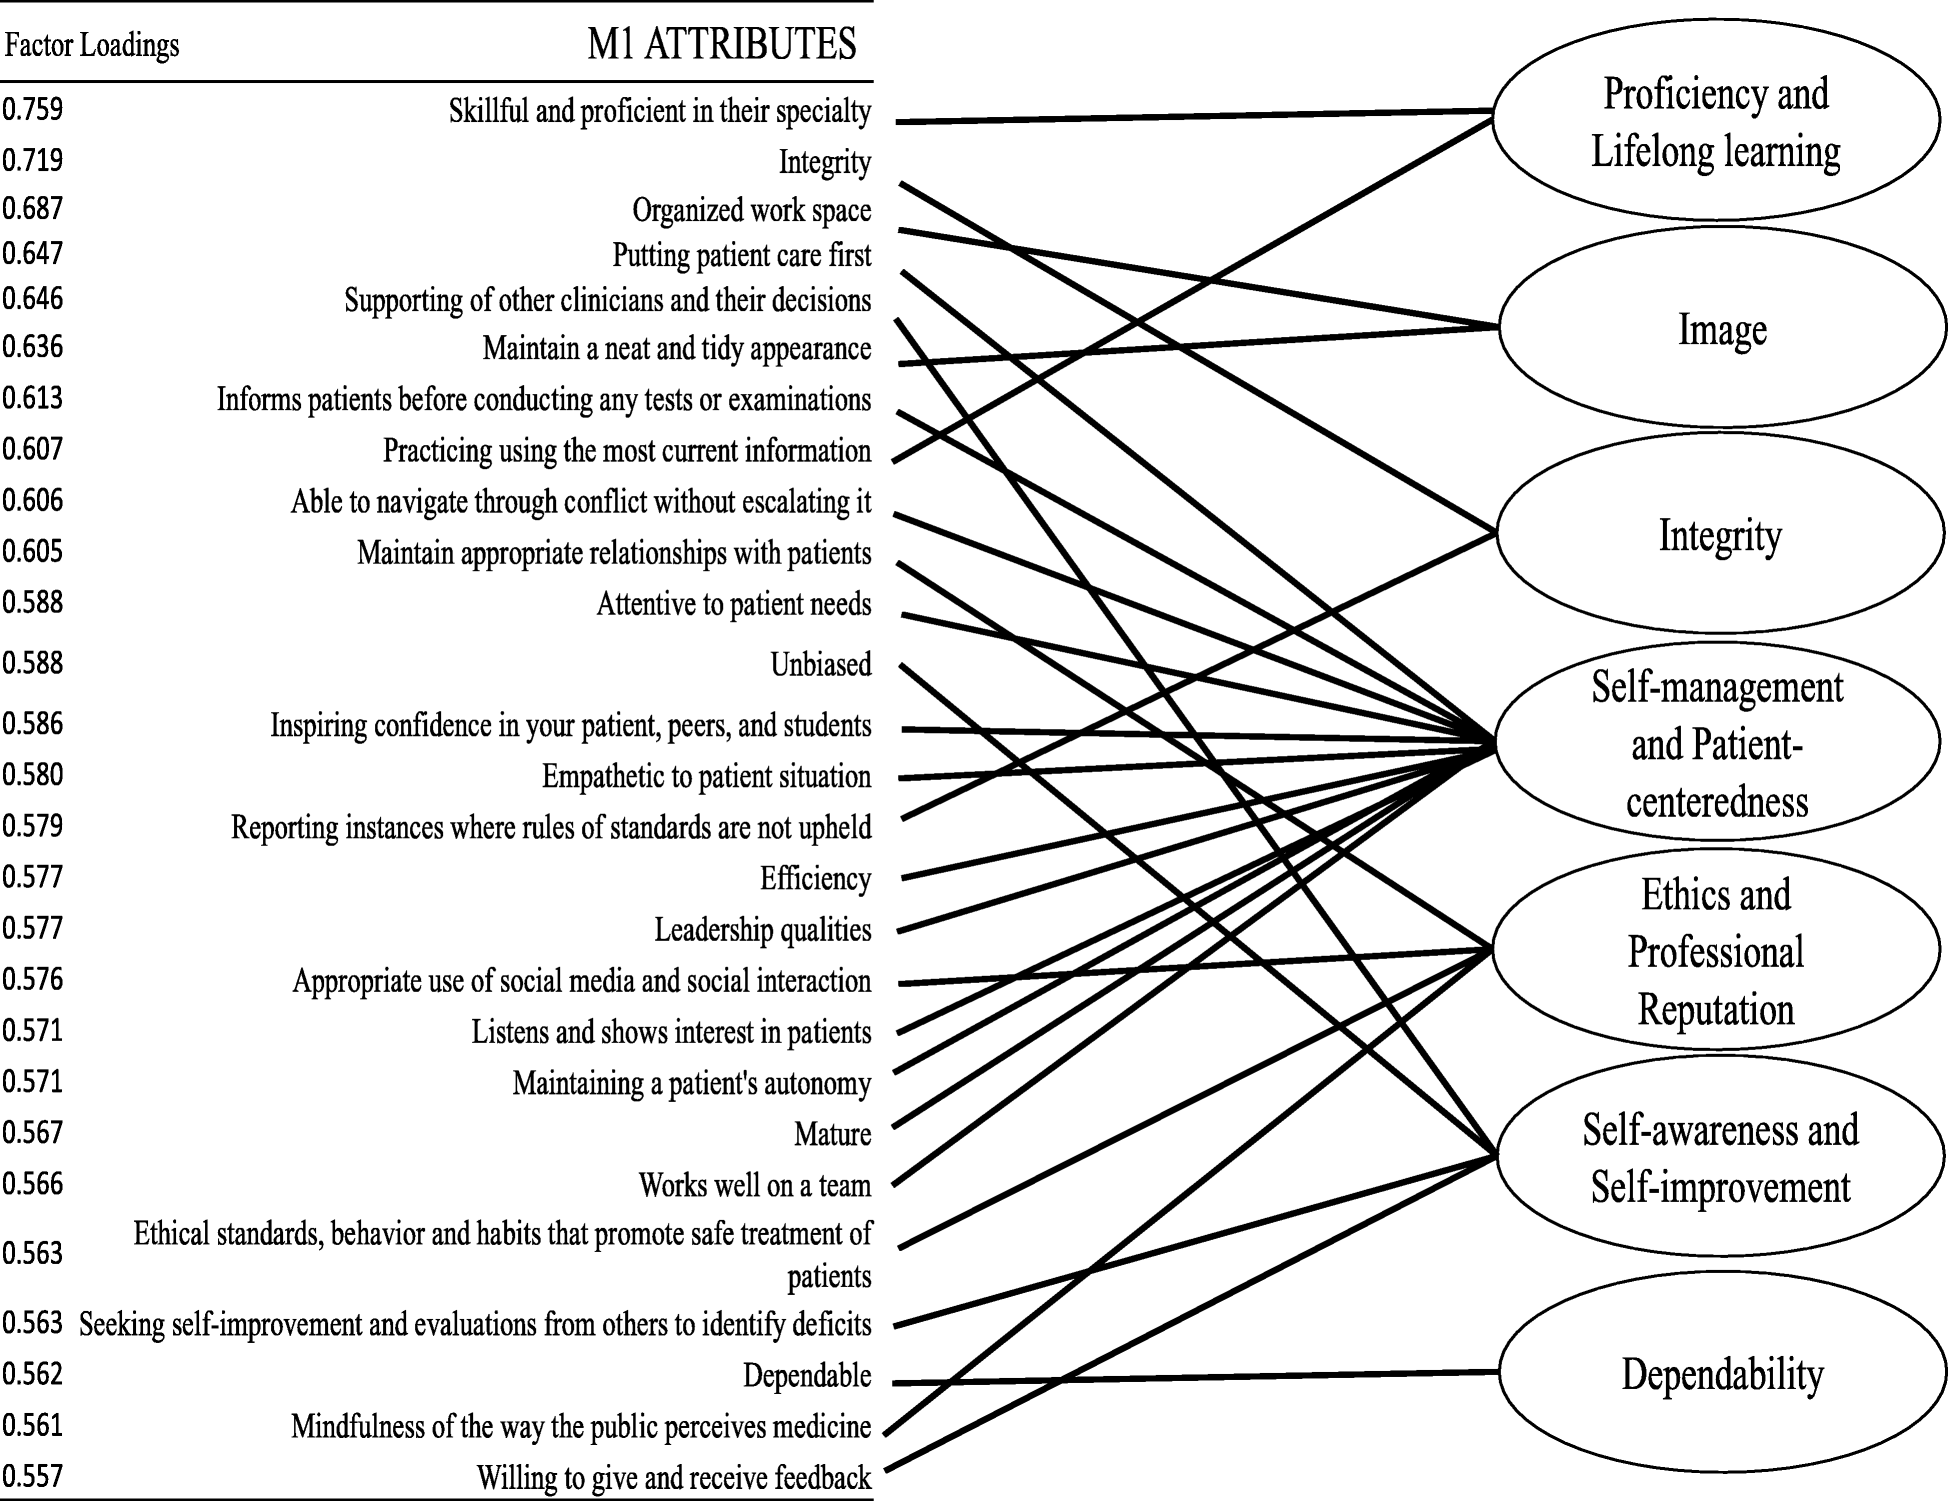 Pre-clerkship medical students' perceptions of medical